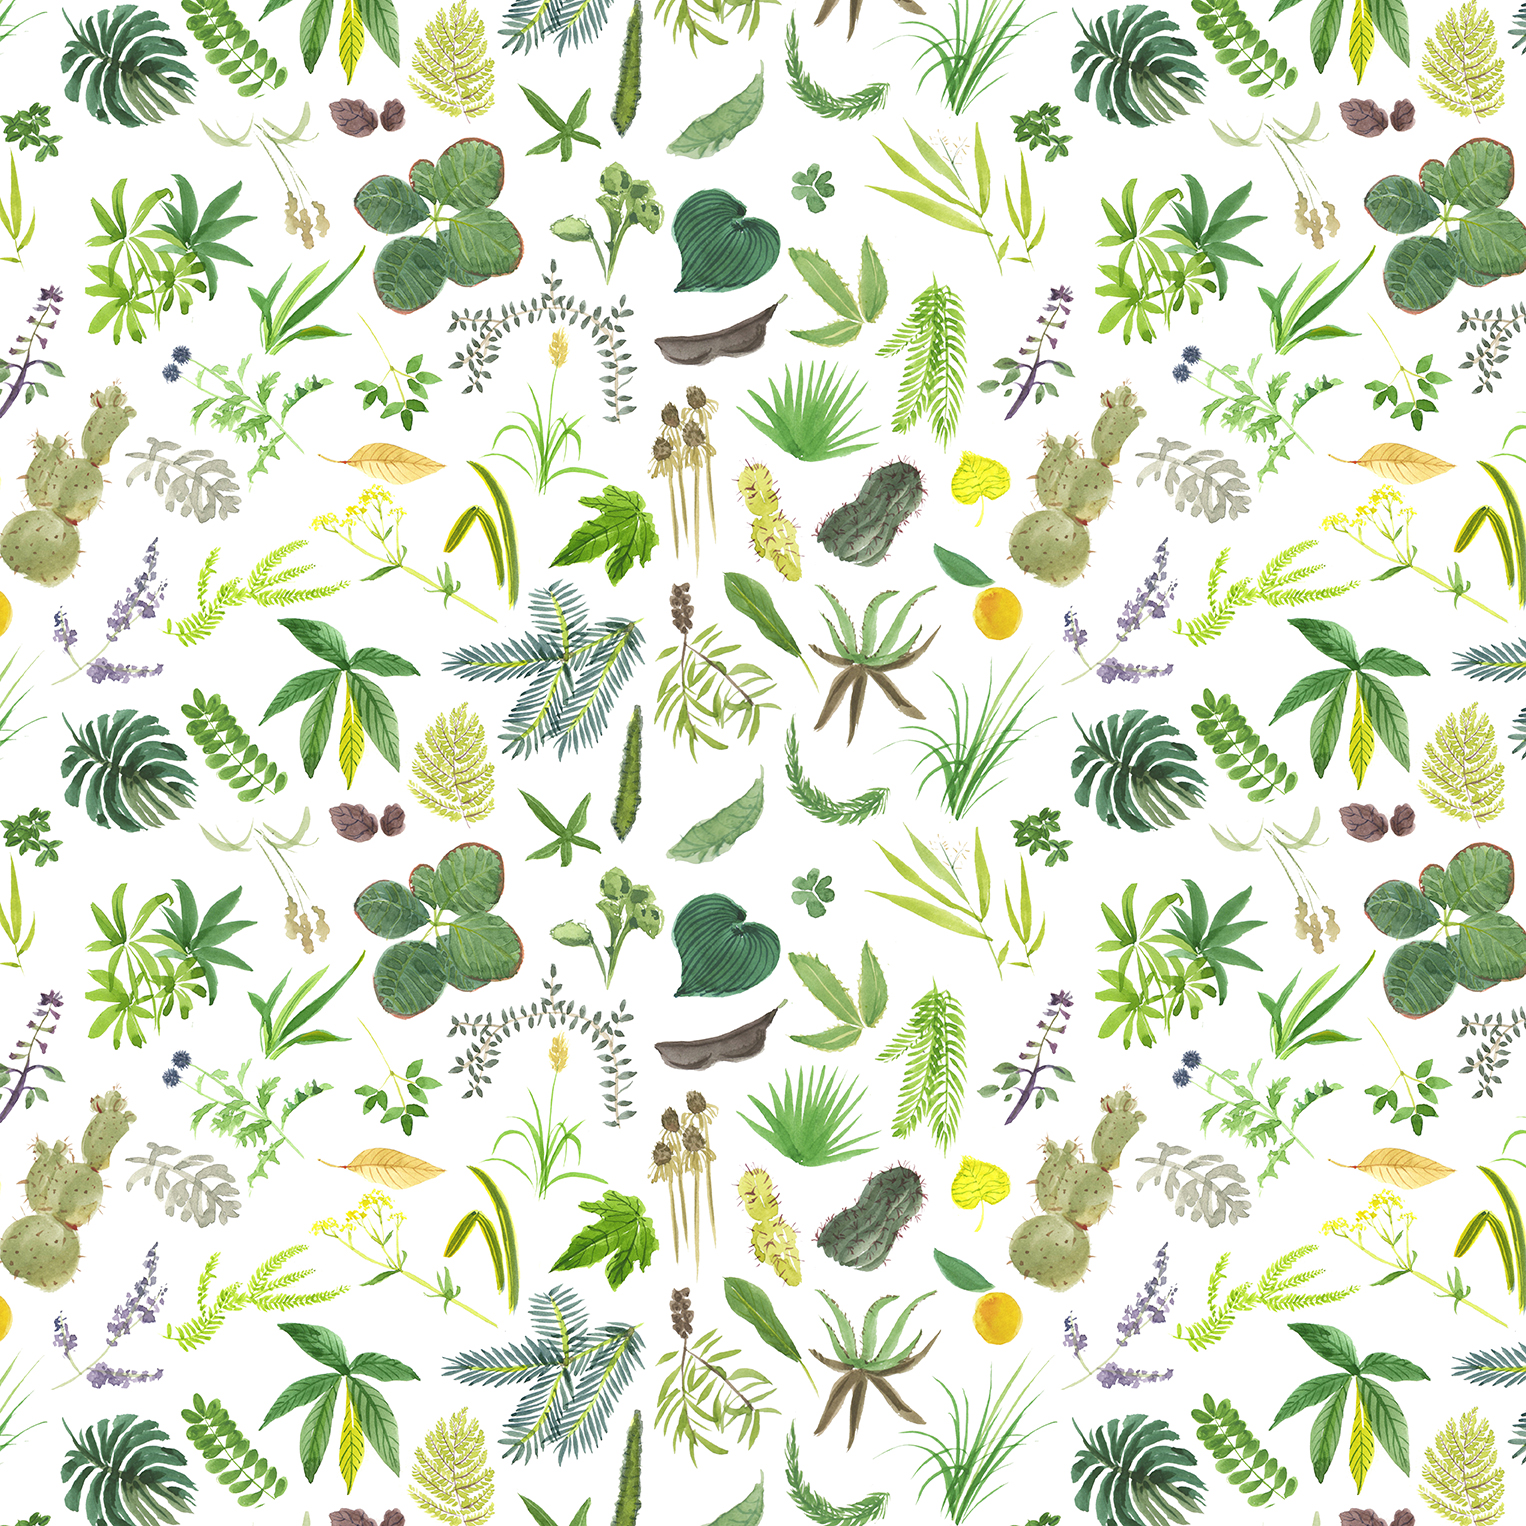 11.botanical pattern.jpg